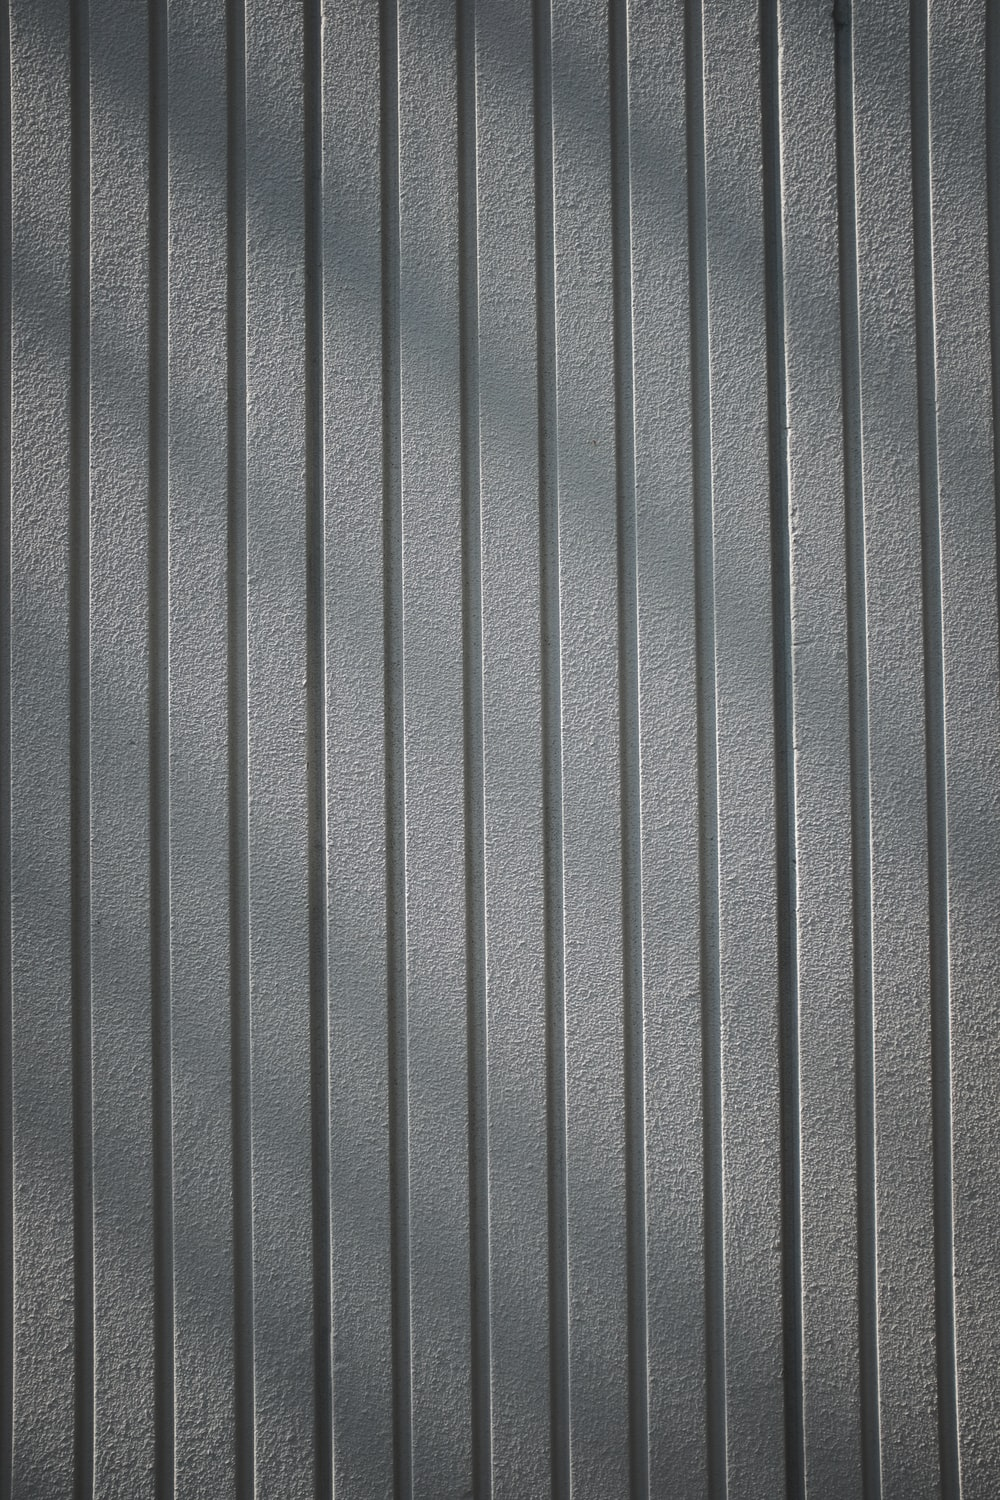 black and gray striped textile